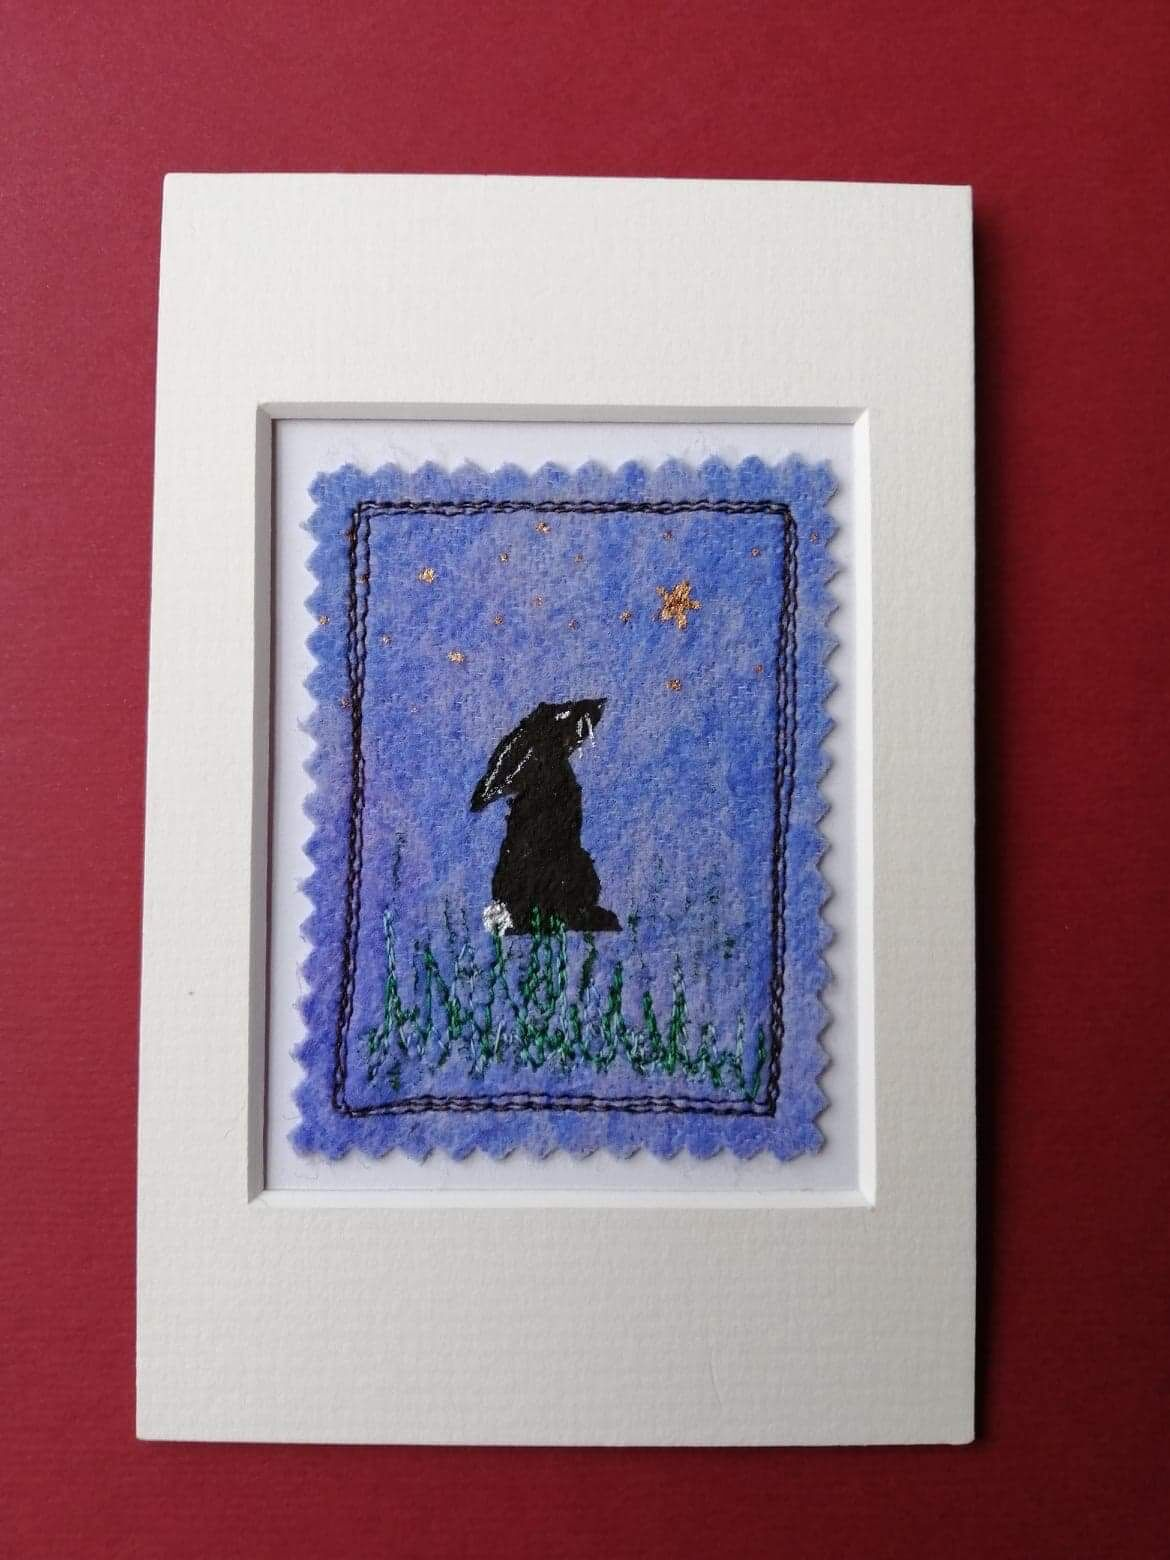 Painted hare #1